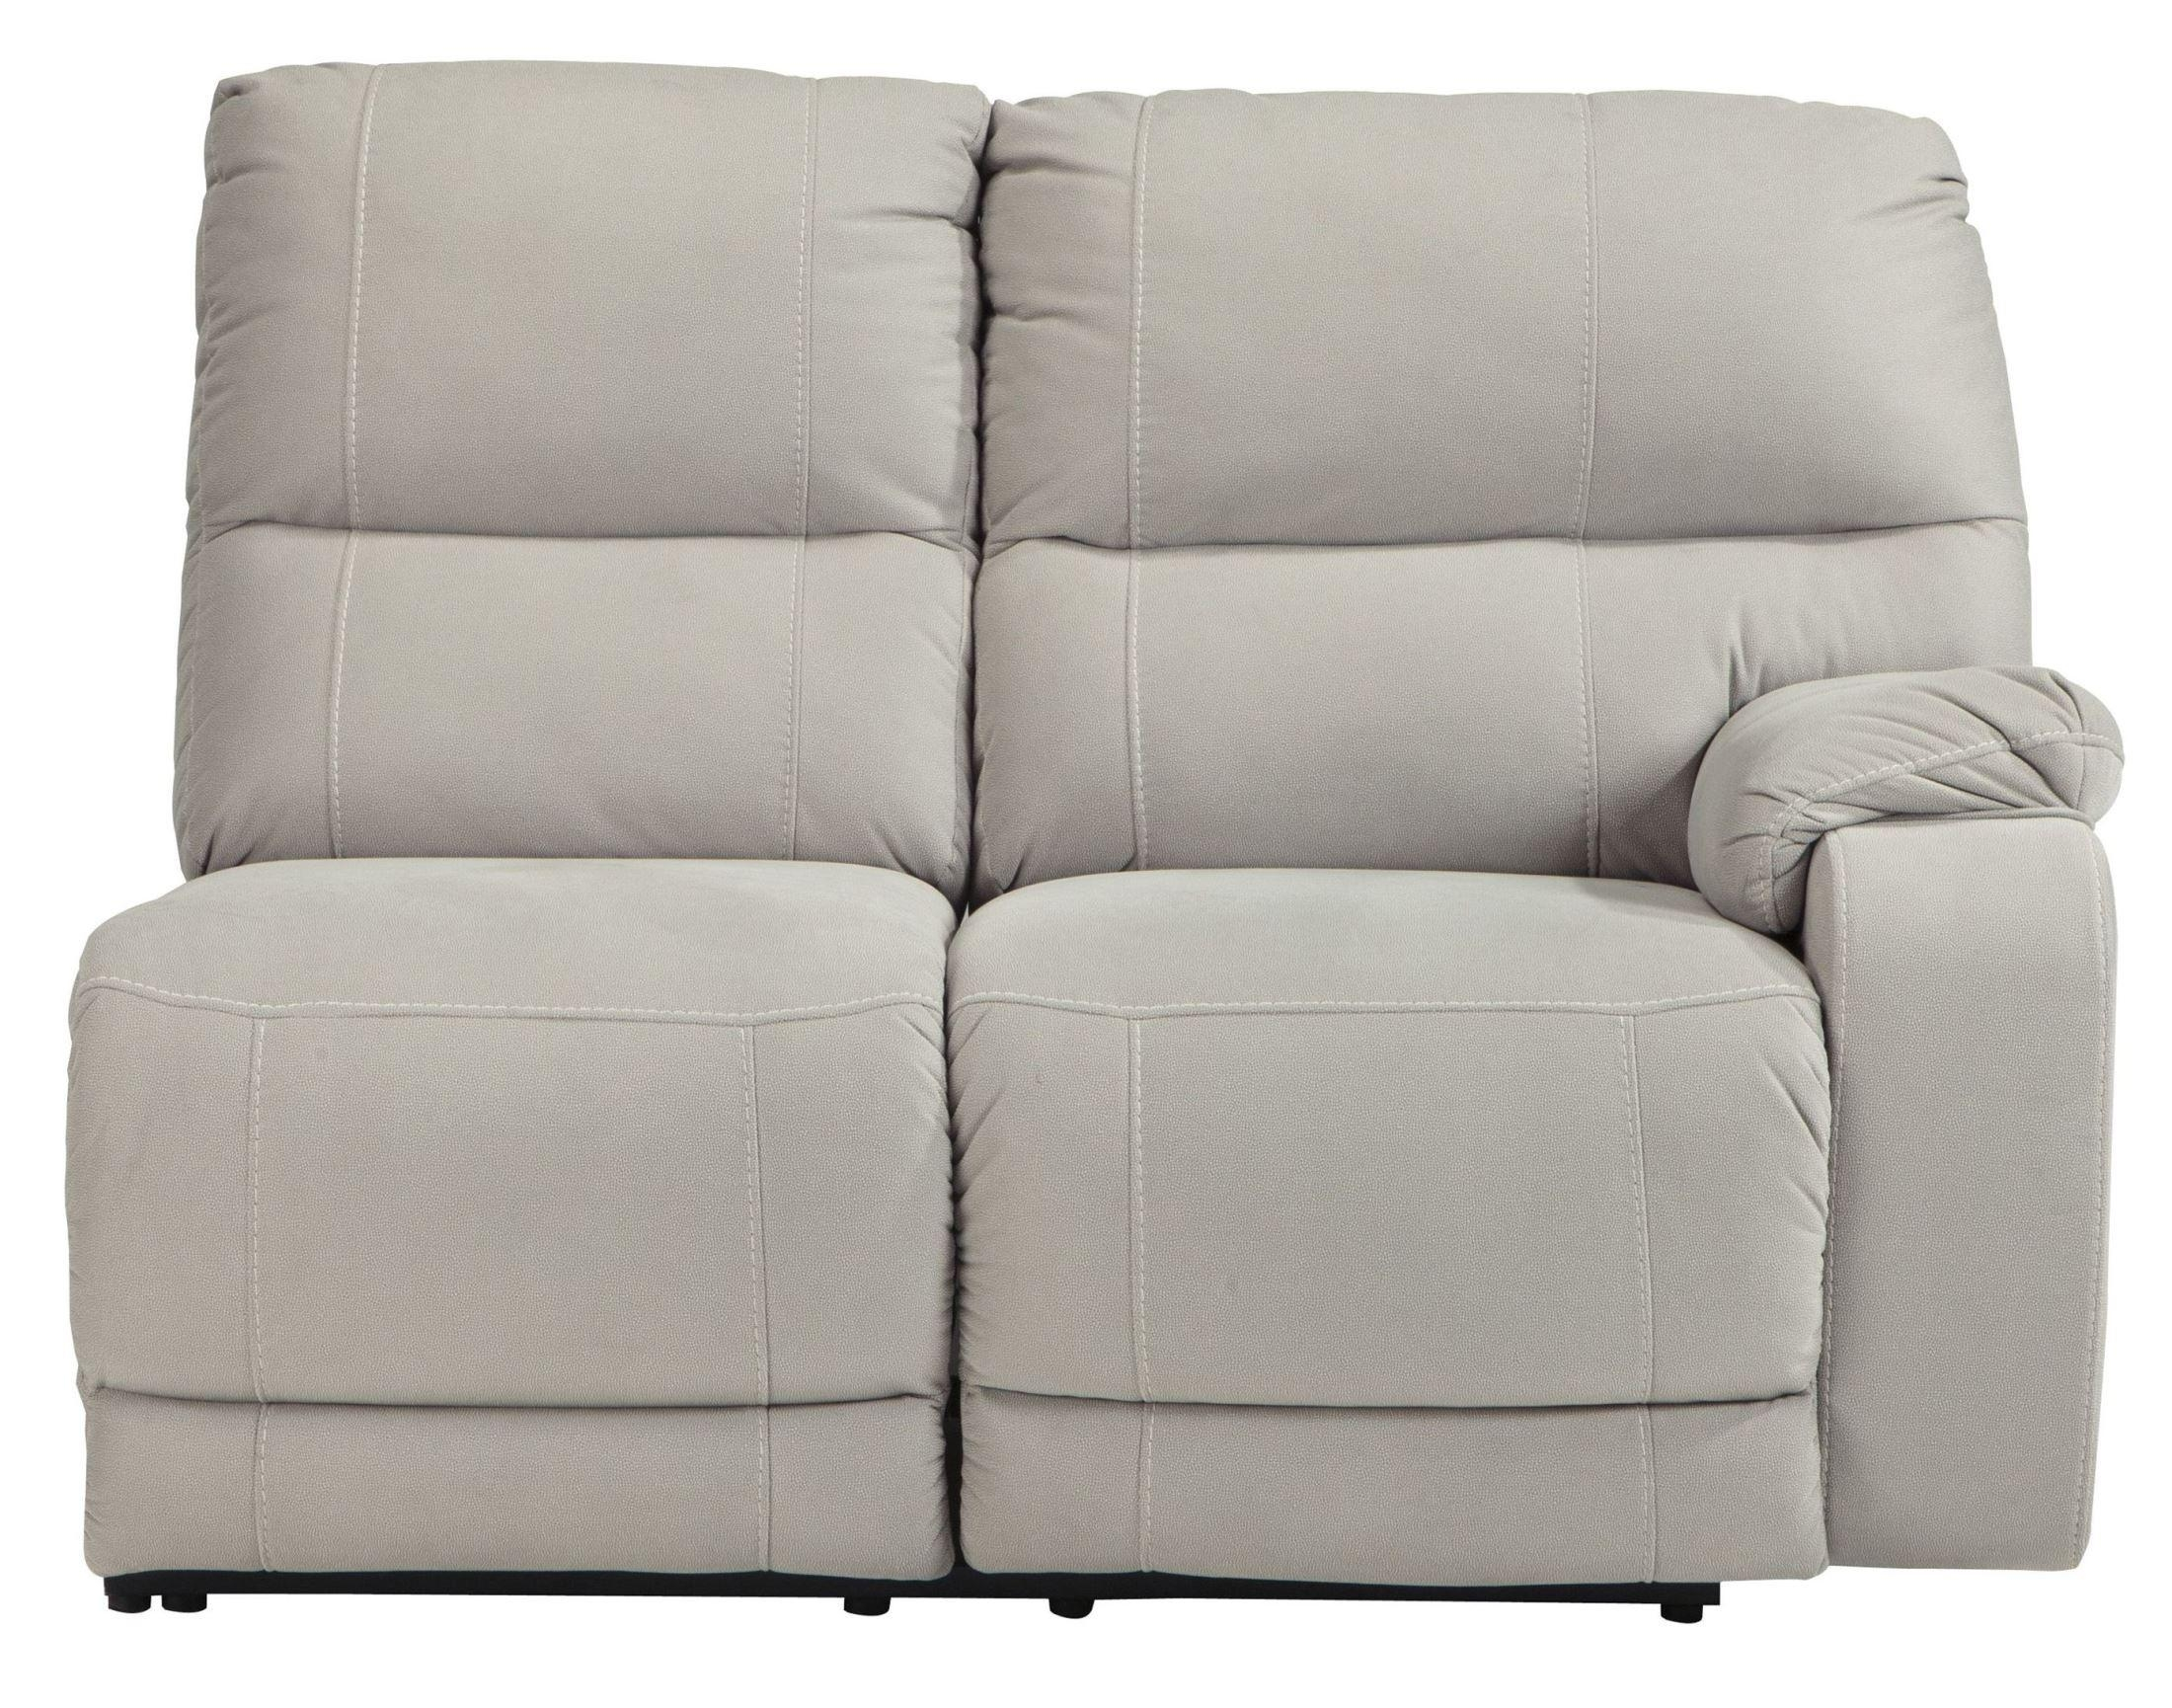 Sofas Center : Carlyle Sofa Beds Shop Reviews Shopcarlisle With Regard To Carlyle Sofa Beds (View 9 of 20)